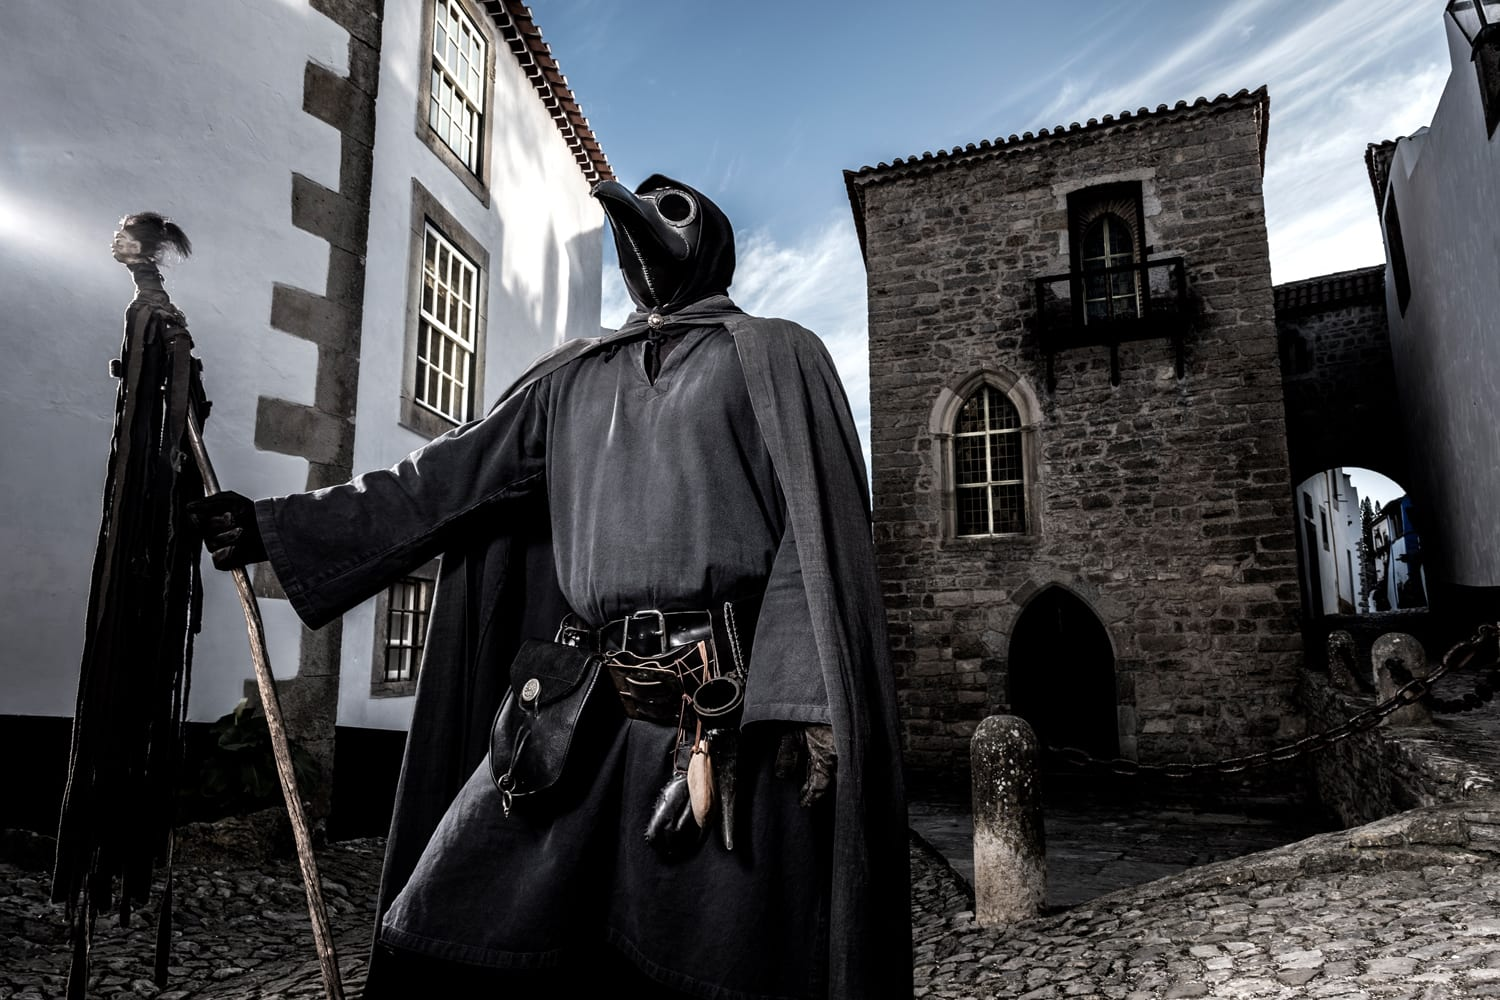 The dark plague doctor